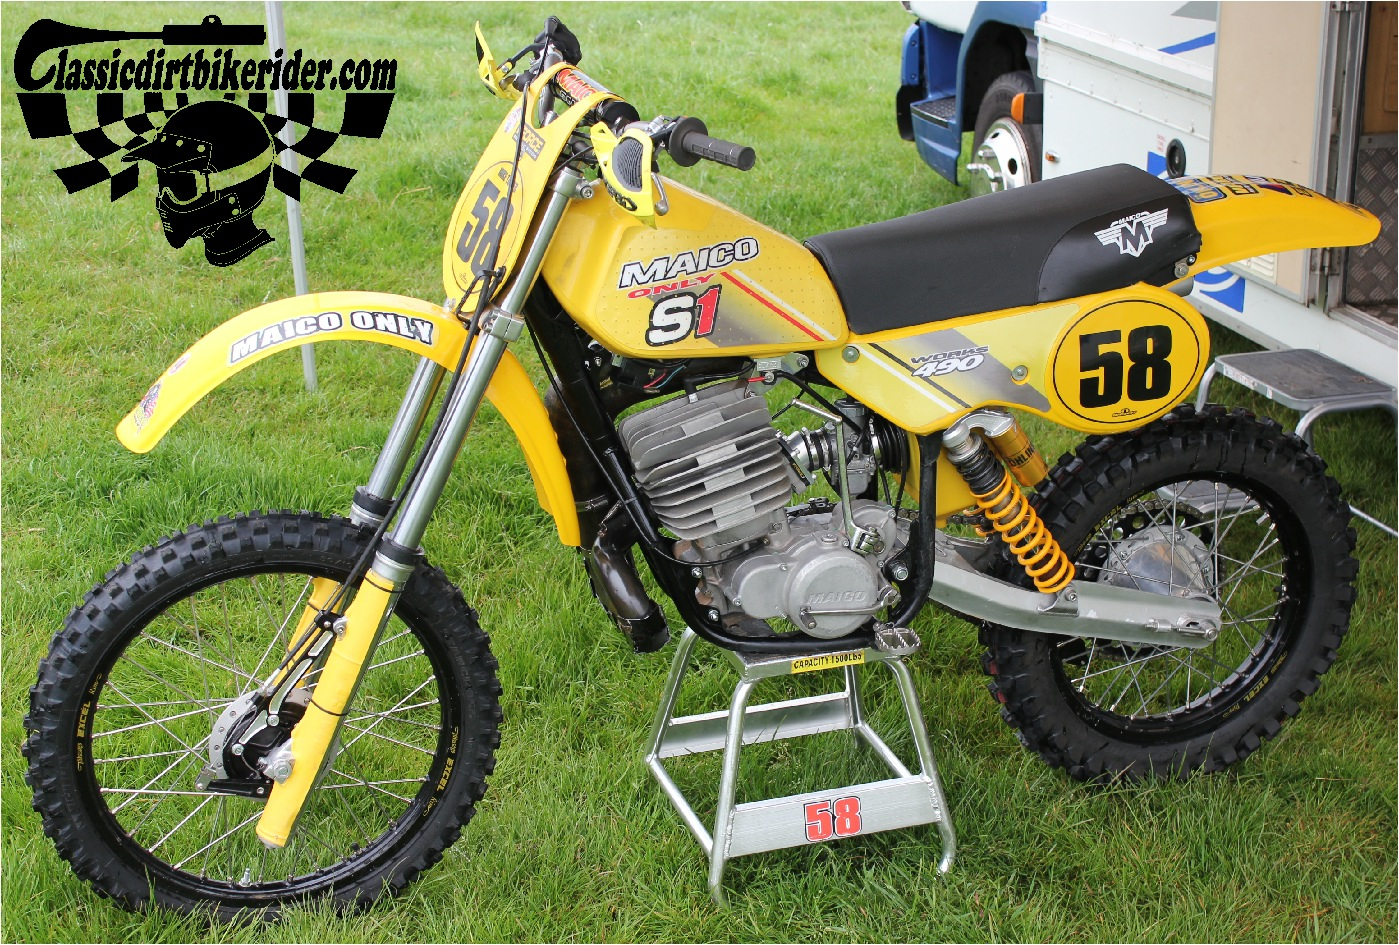 classicdirtbikerider.com-national-twinshock-championship-2015-Garstang-MAICO ONLY S1 490